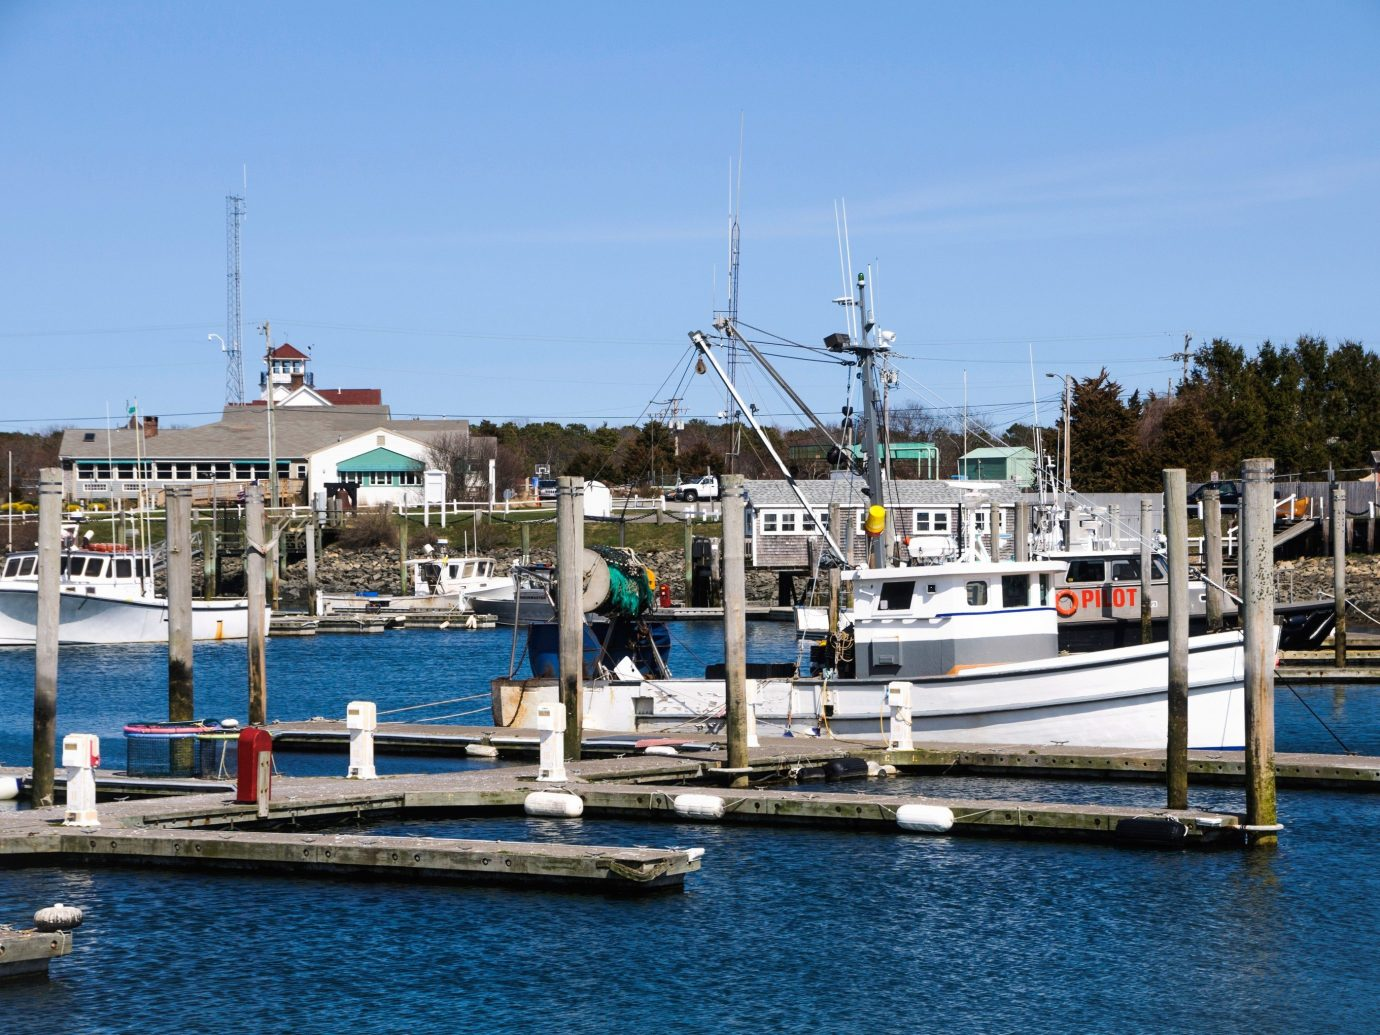 Trip Ideas sky water outdoor Boat scene Harbor marina vehicle dock Sea pier ferry ship docked passenger ship port channel watercraft boating Coast waterway bay mast